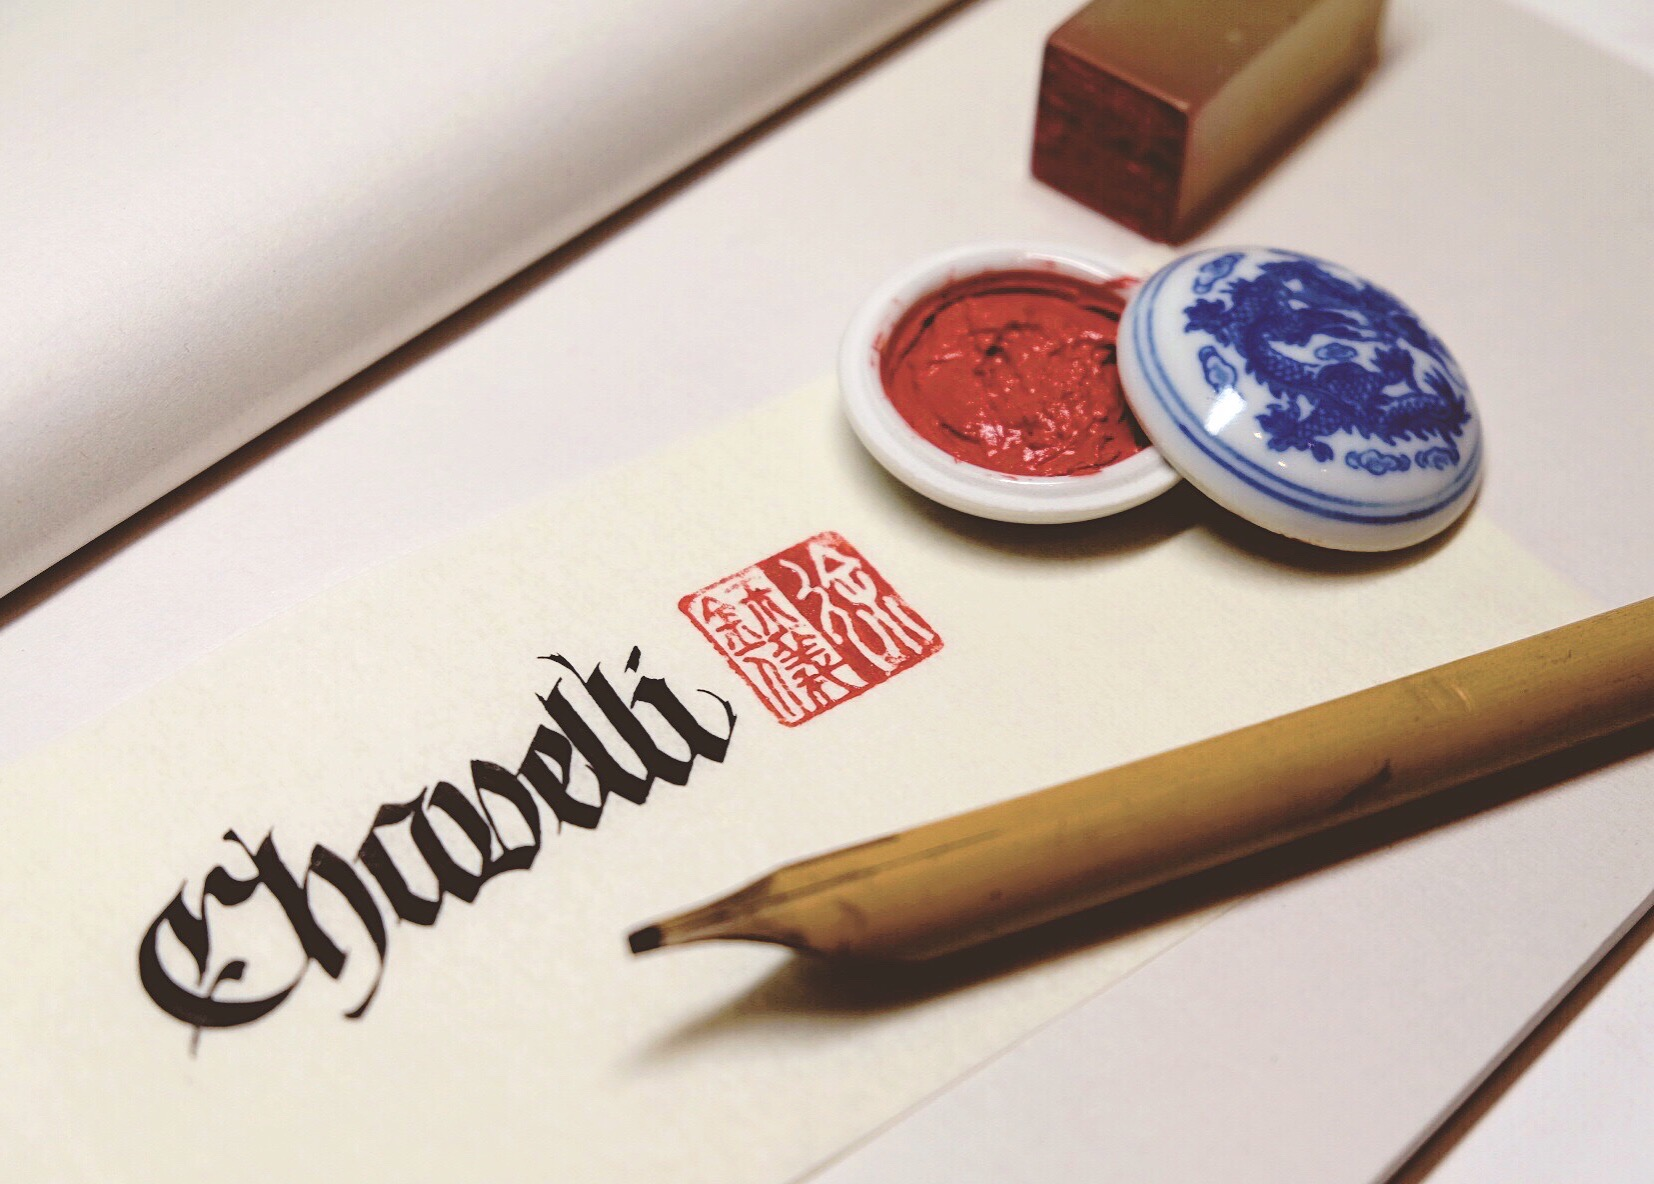 Blackletter and Chinese chop by Chavelli | www.chavelli.com